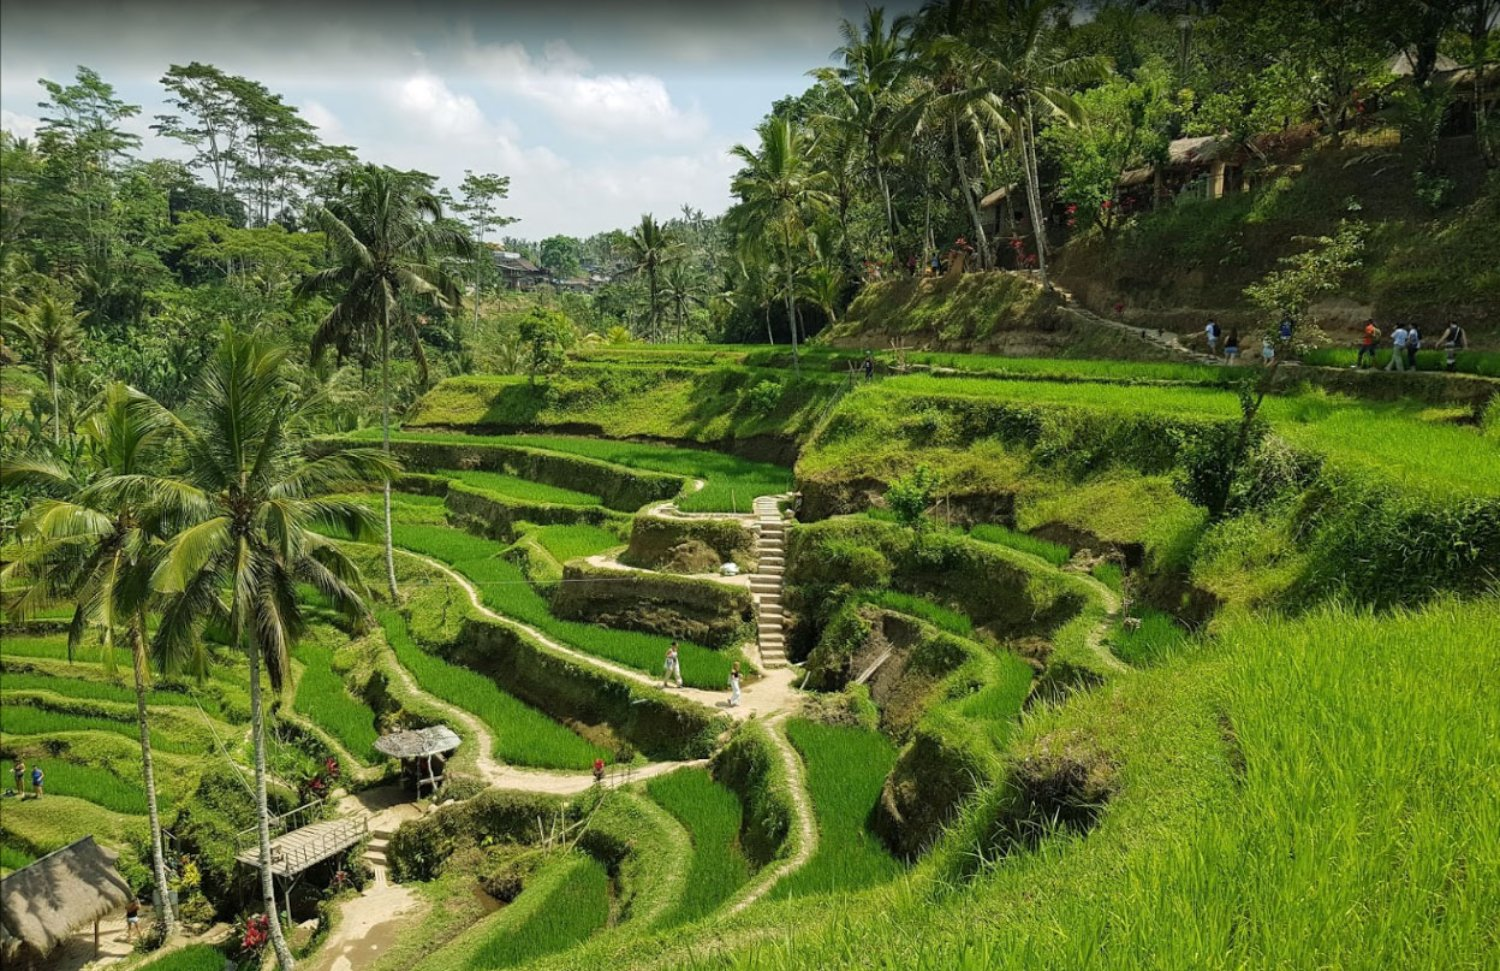 The Newest Taxi Price from Ubud to Tegalalang Rice Terrace